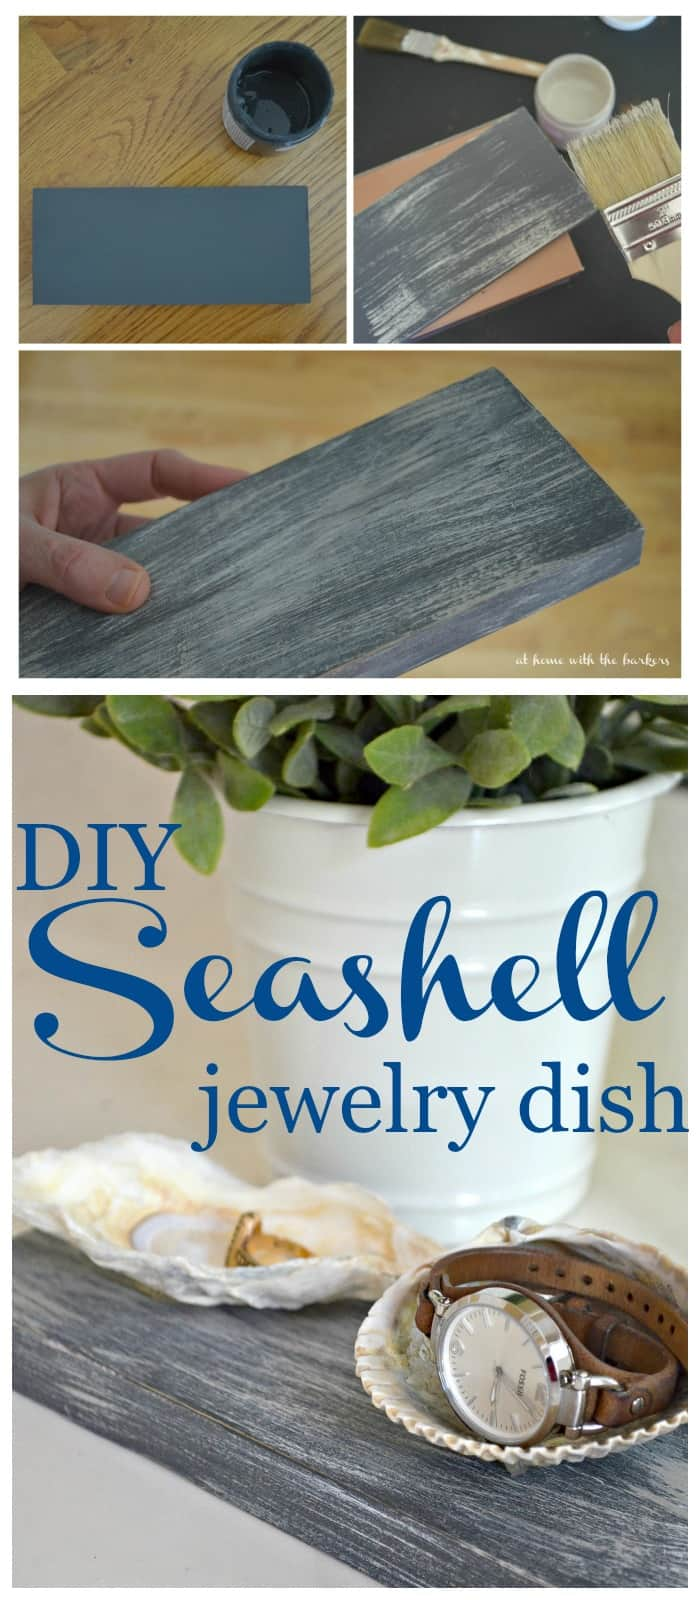 DIY Craft Seashell Jewelry Dish